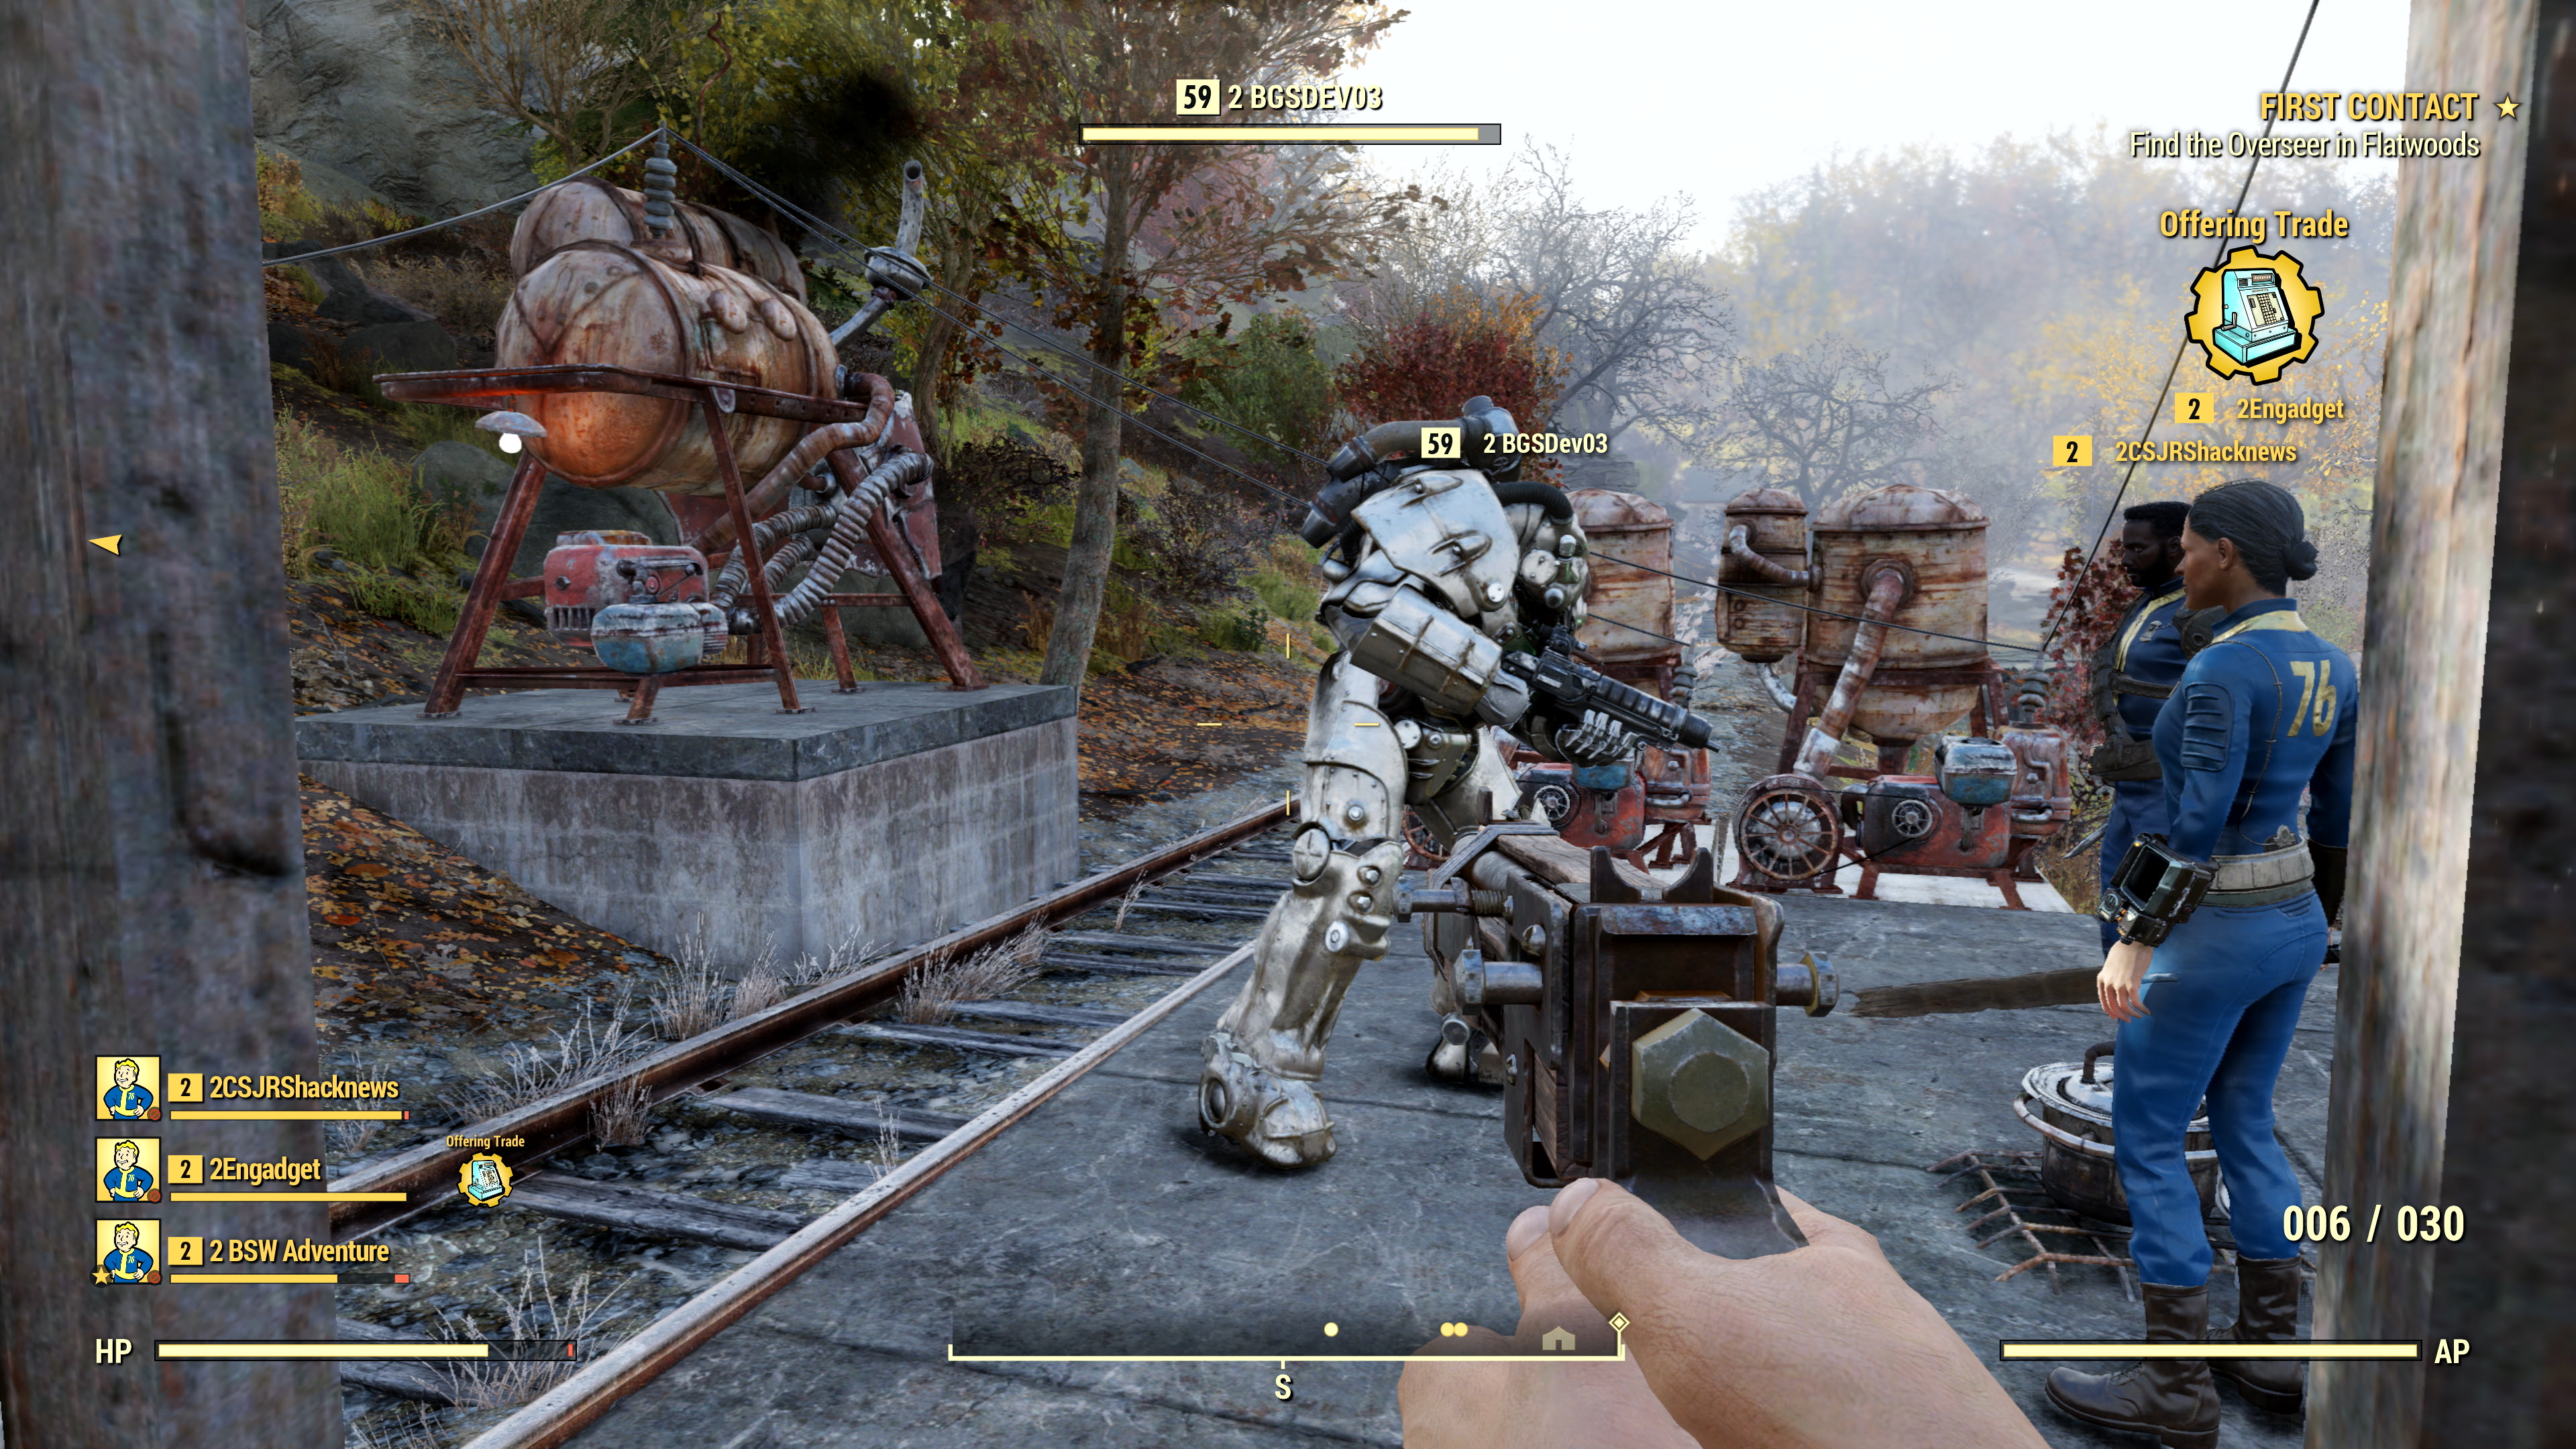 Fallout 76 Free-to-play - Could Bethesda make it happen? | GameWatcher